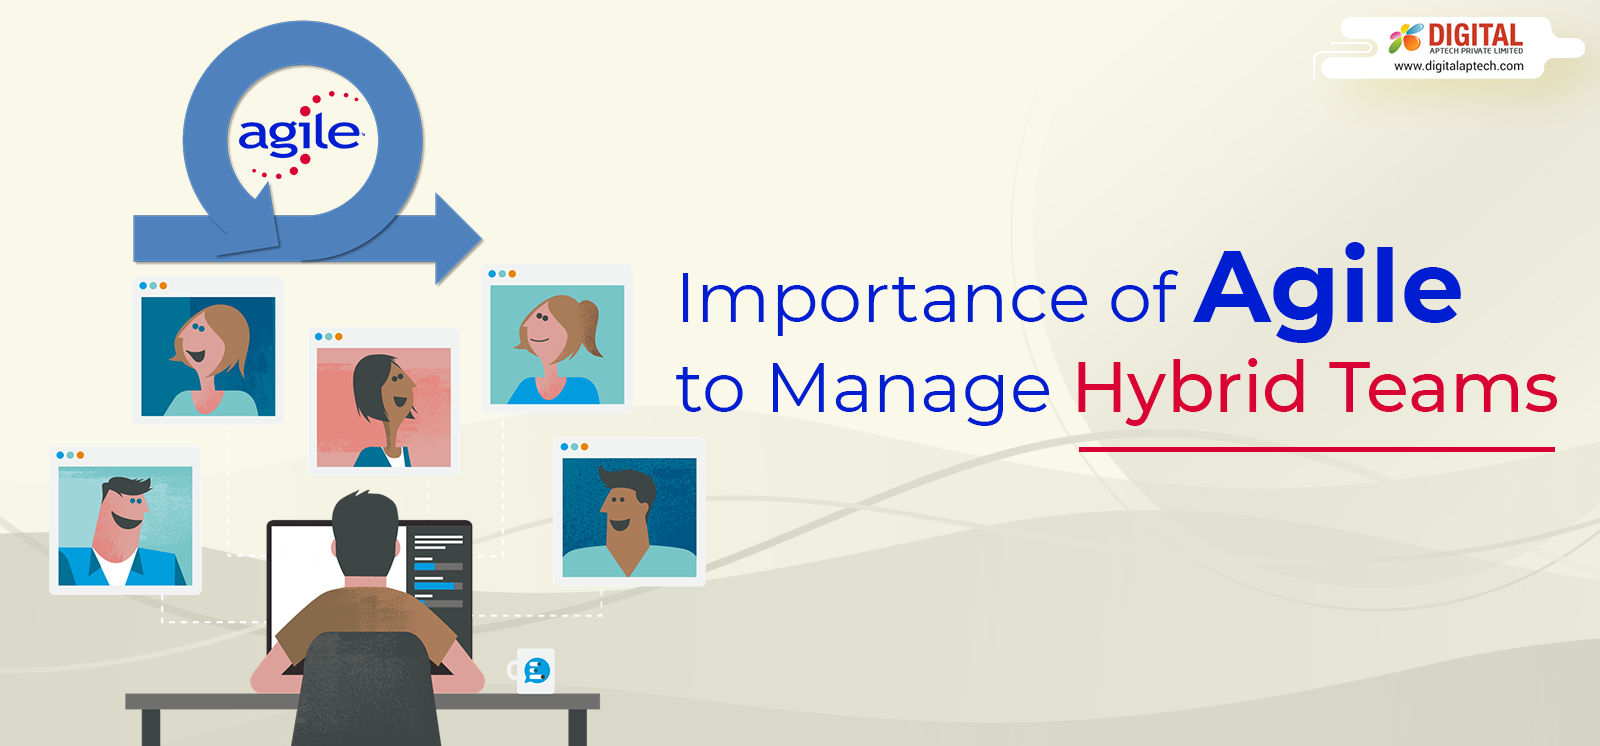 Importance of Agile to Manage Hybrid Teams